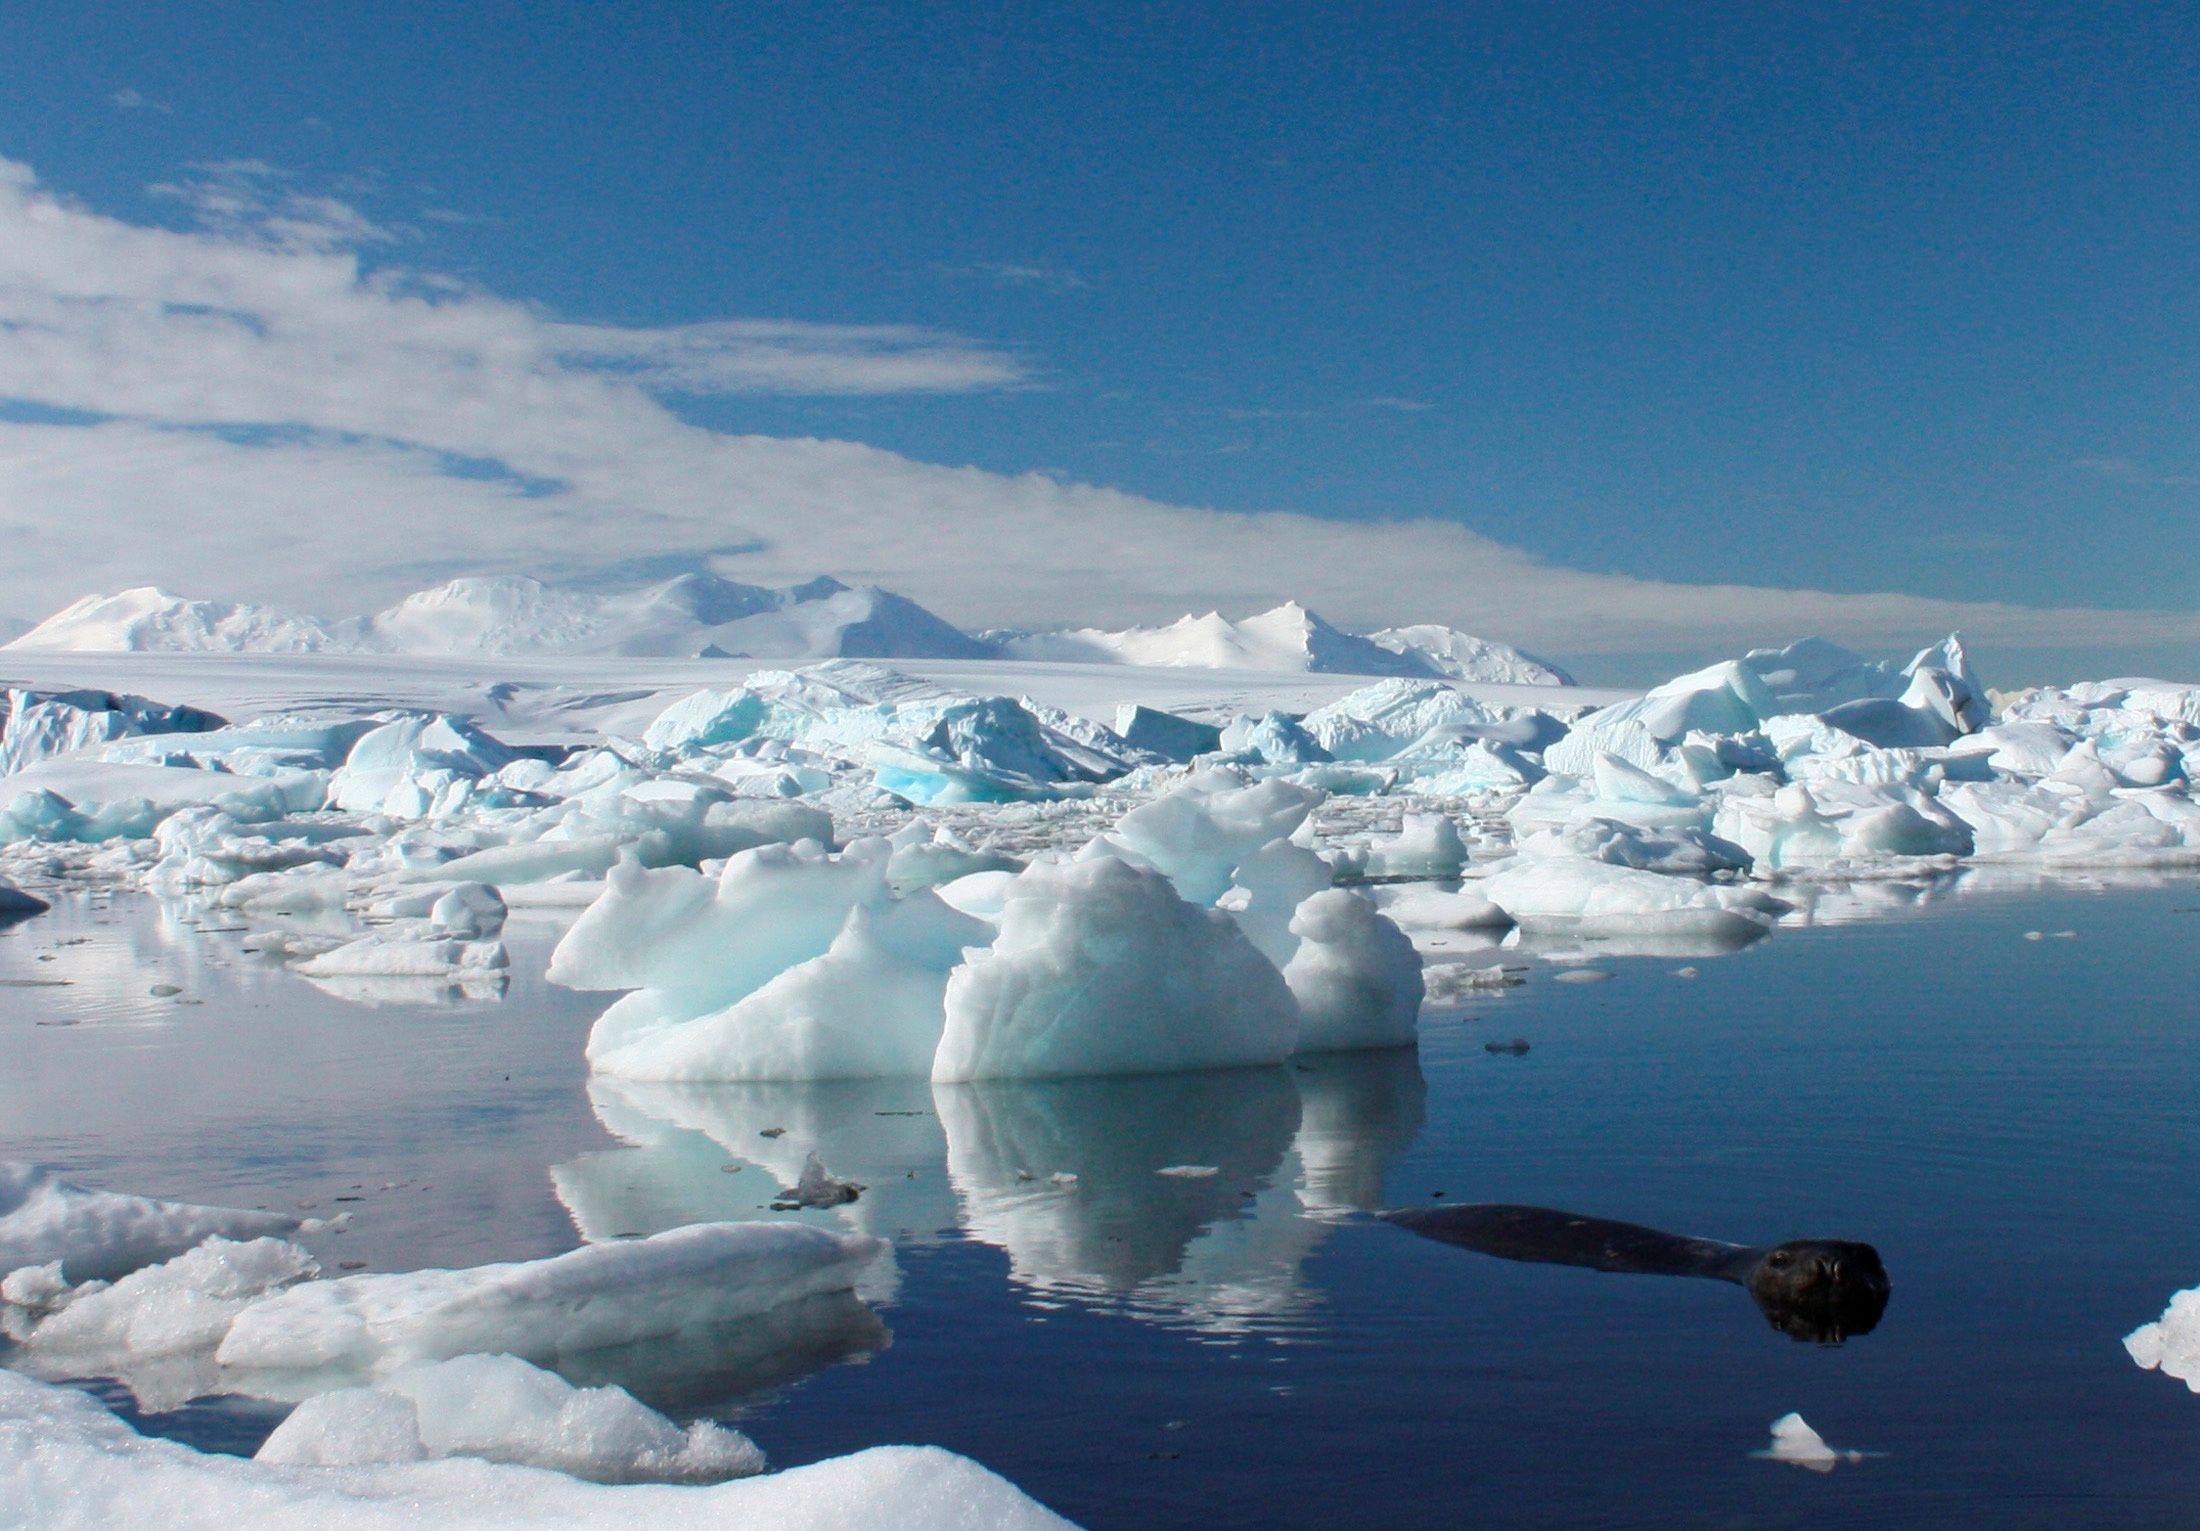 icebergs in the Antarctic